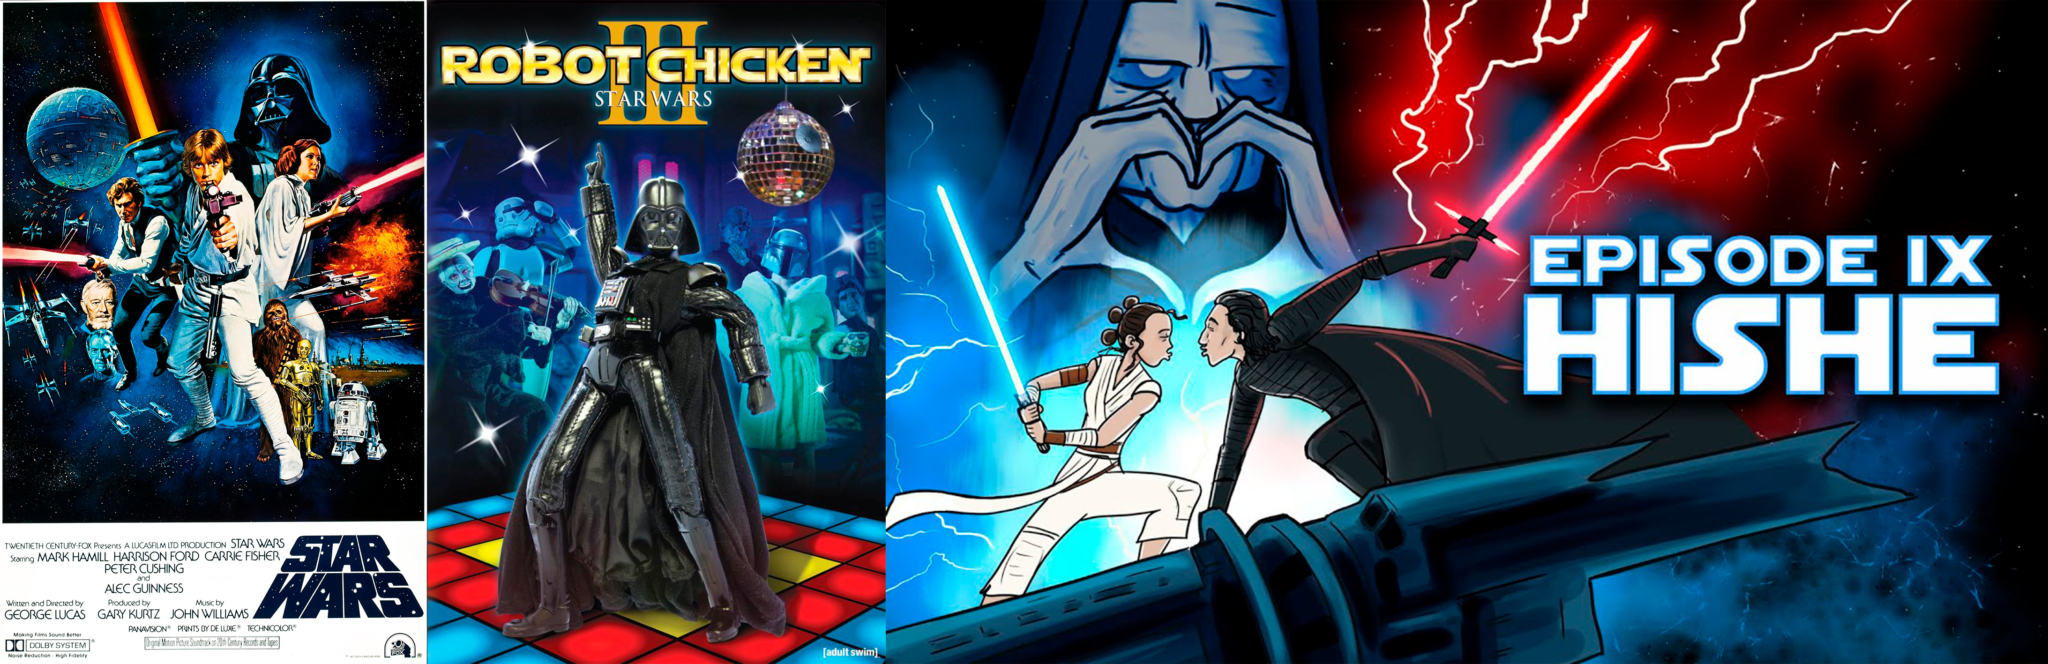 Star Wars parody: Robot Chicken and Hishe - thescriptblog.com